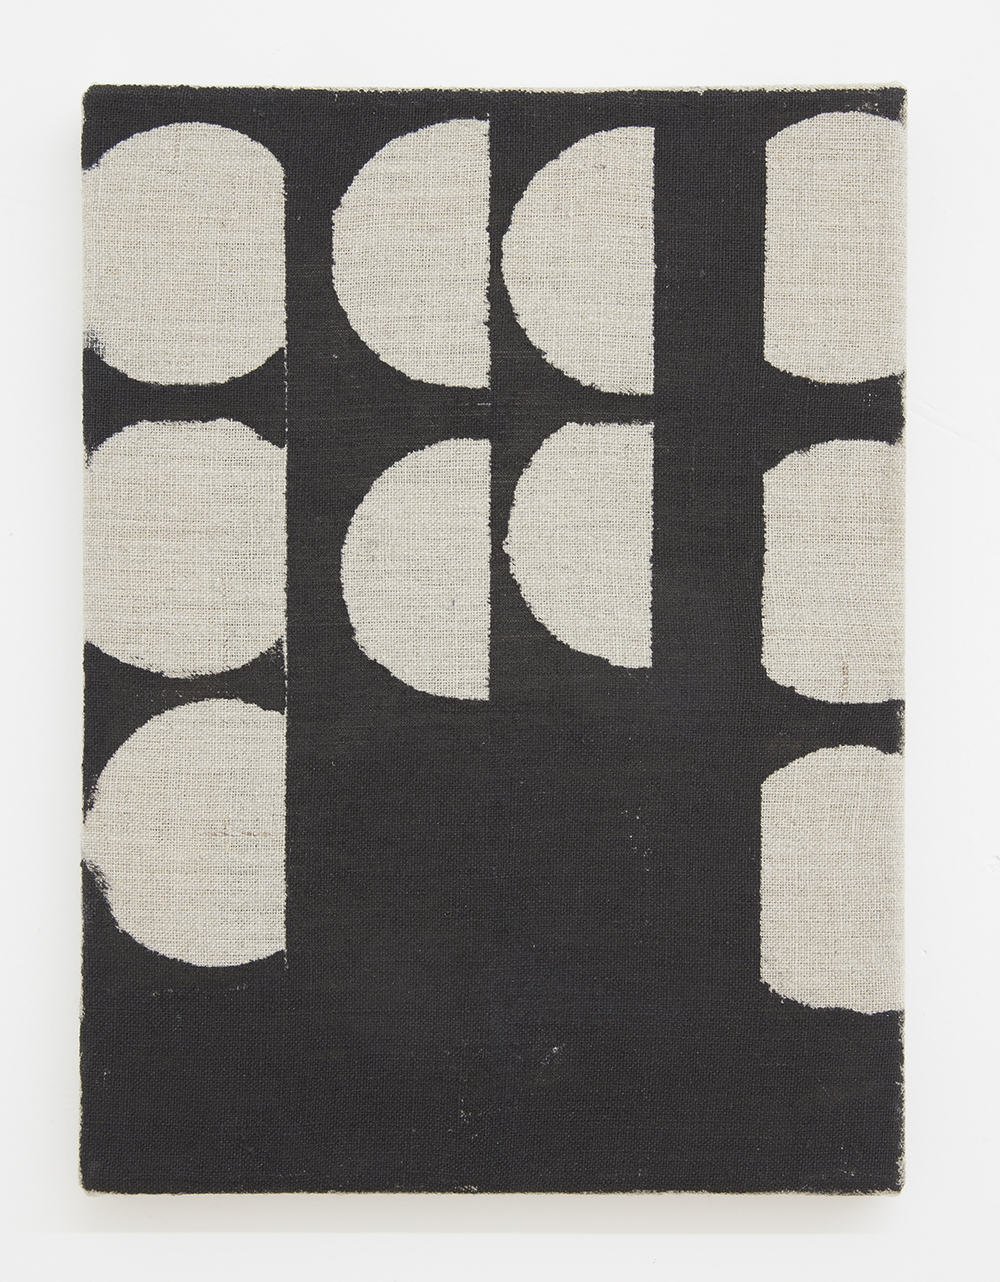 AUGUSTUS THOMPSON  Untitled (Bean Can 3) , 2013 Ink on linen  12 x 8 inches